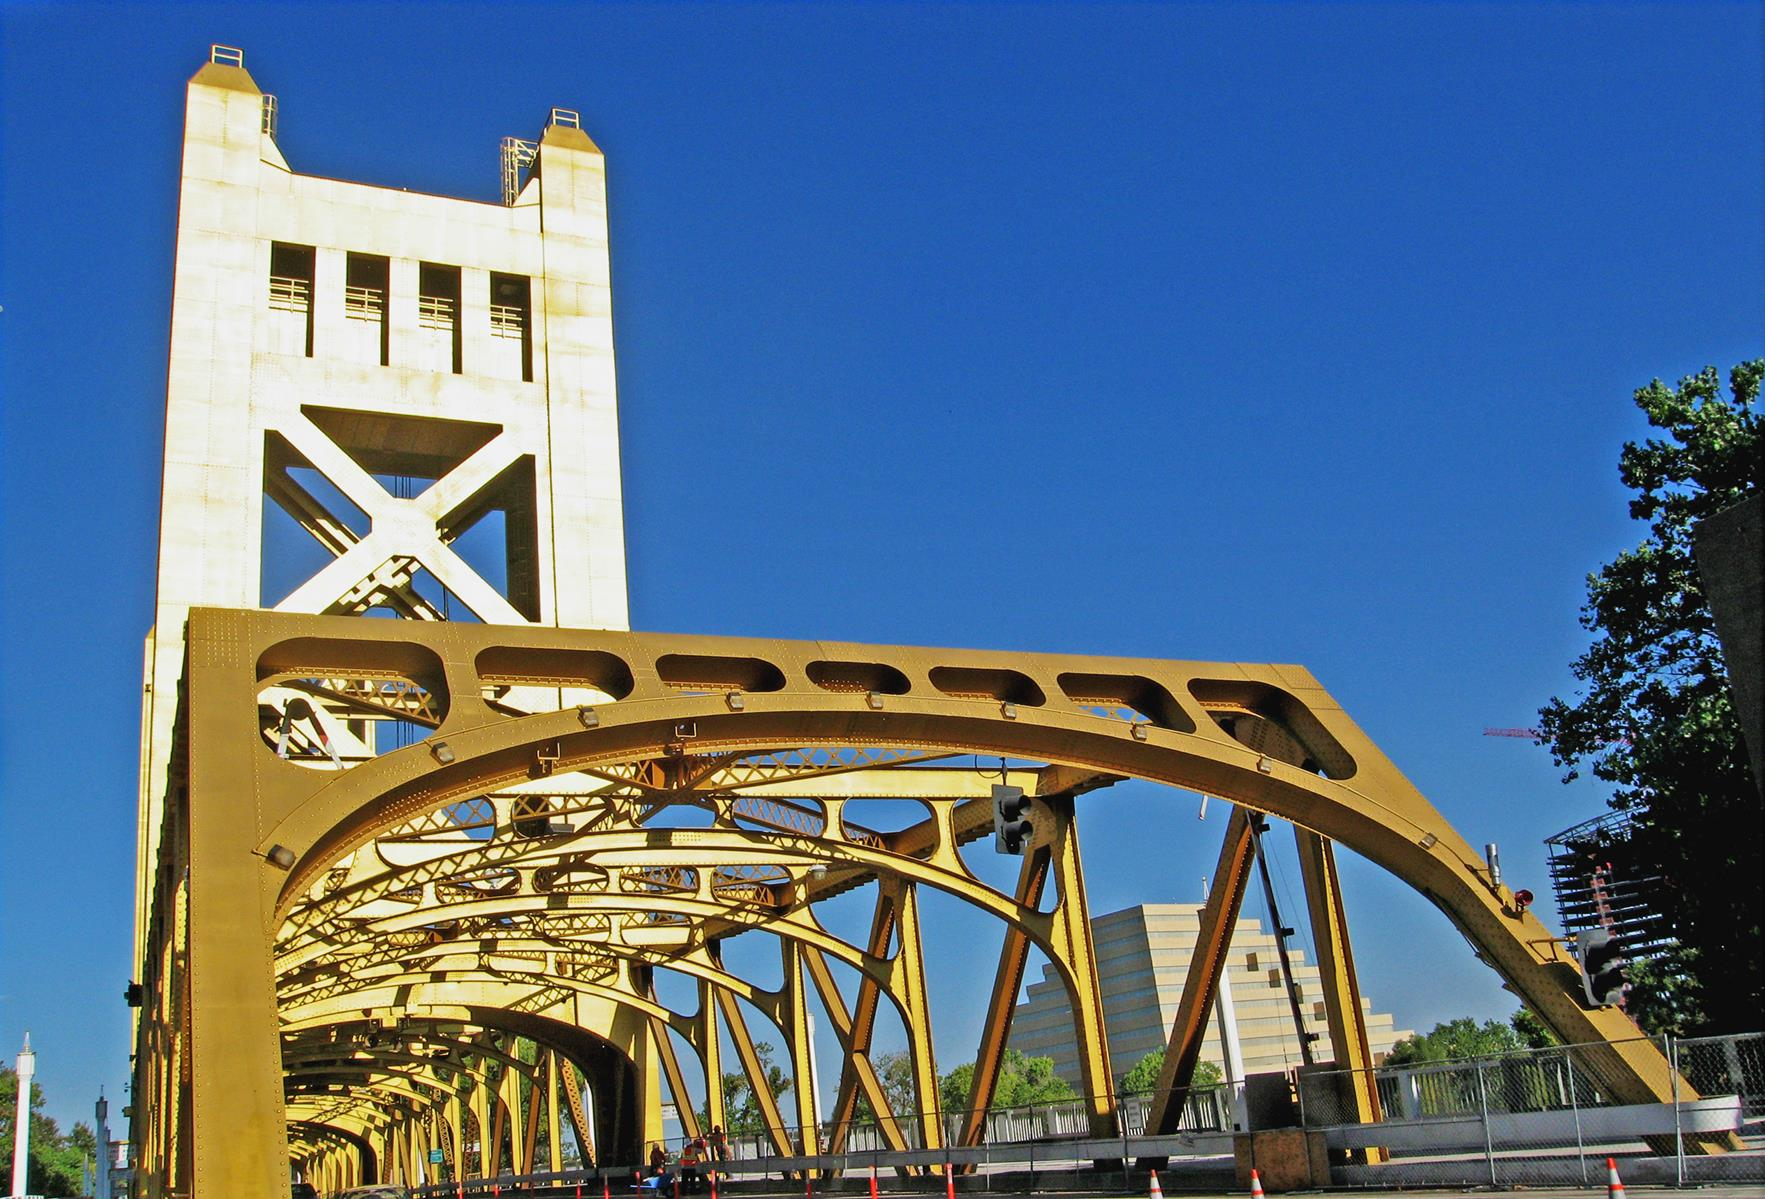 Tower BRIDGE in west sac looking WEST